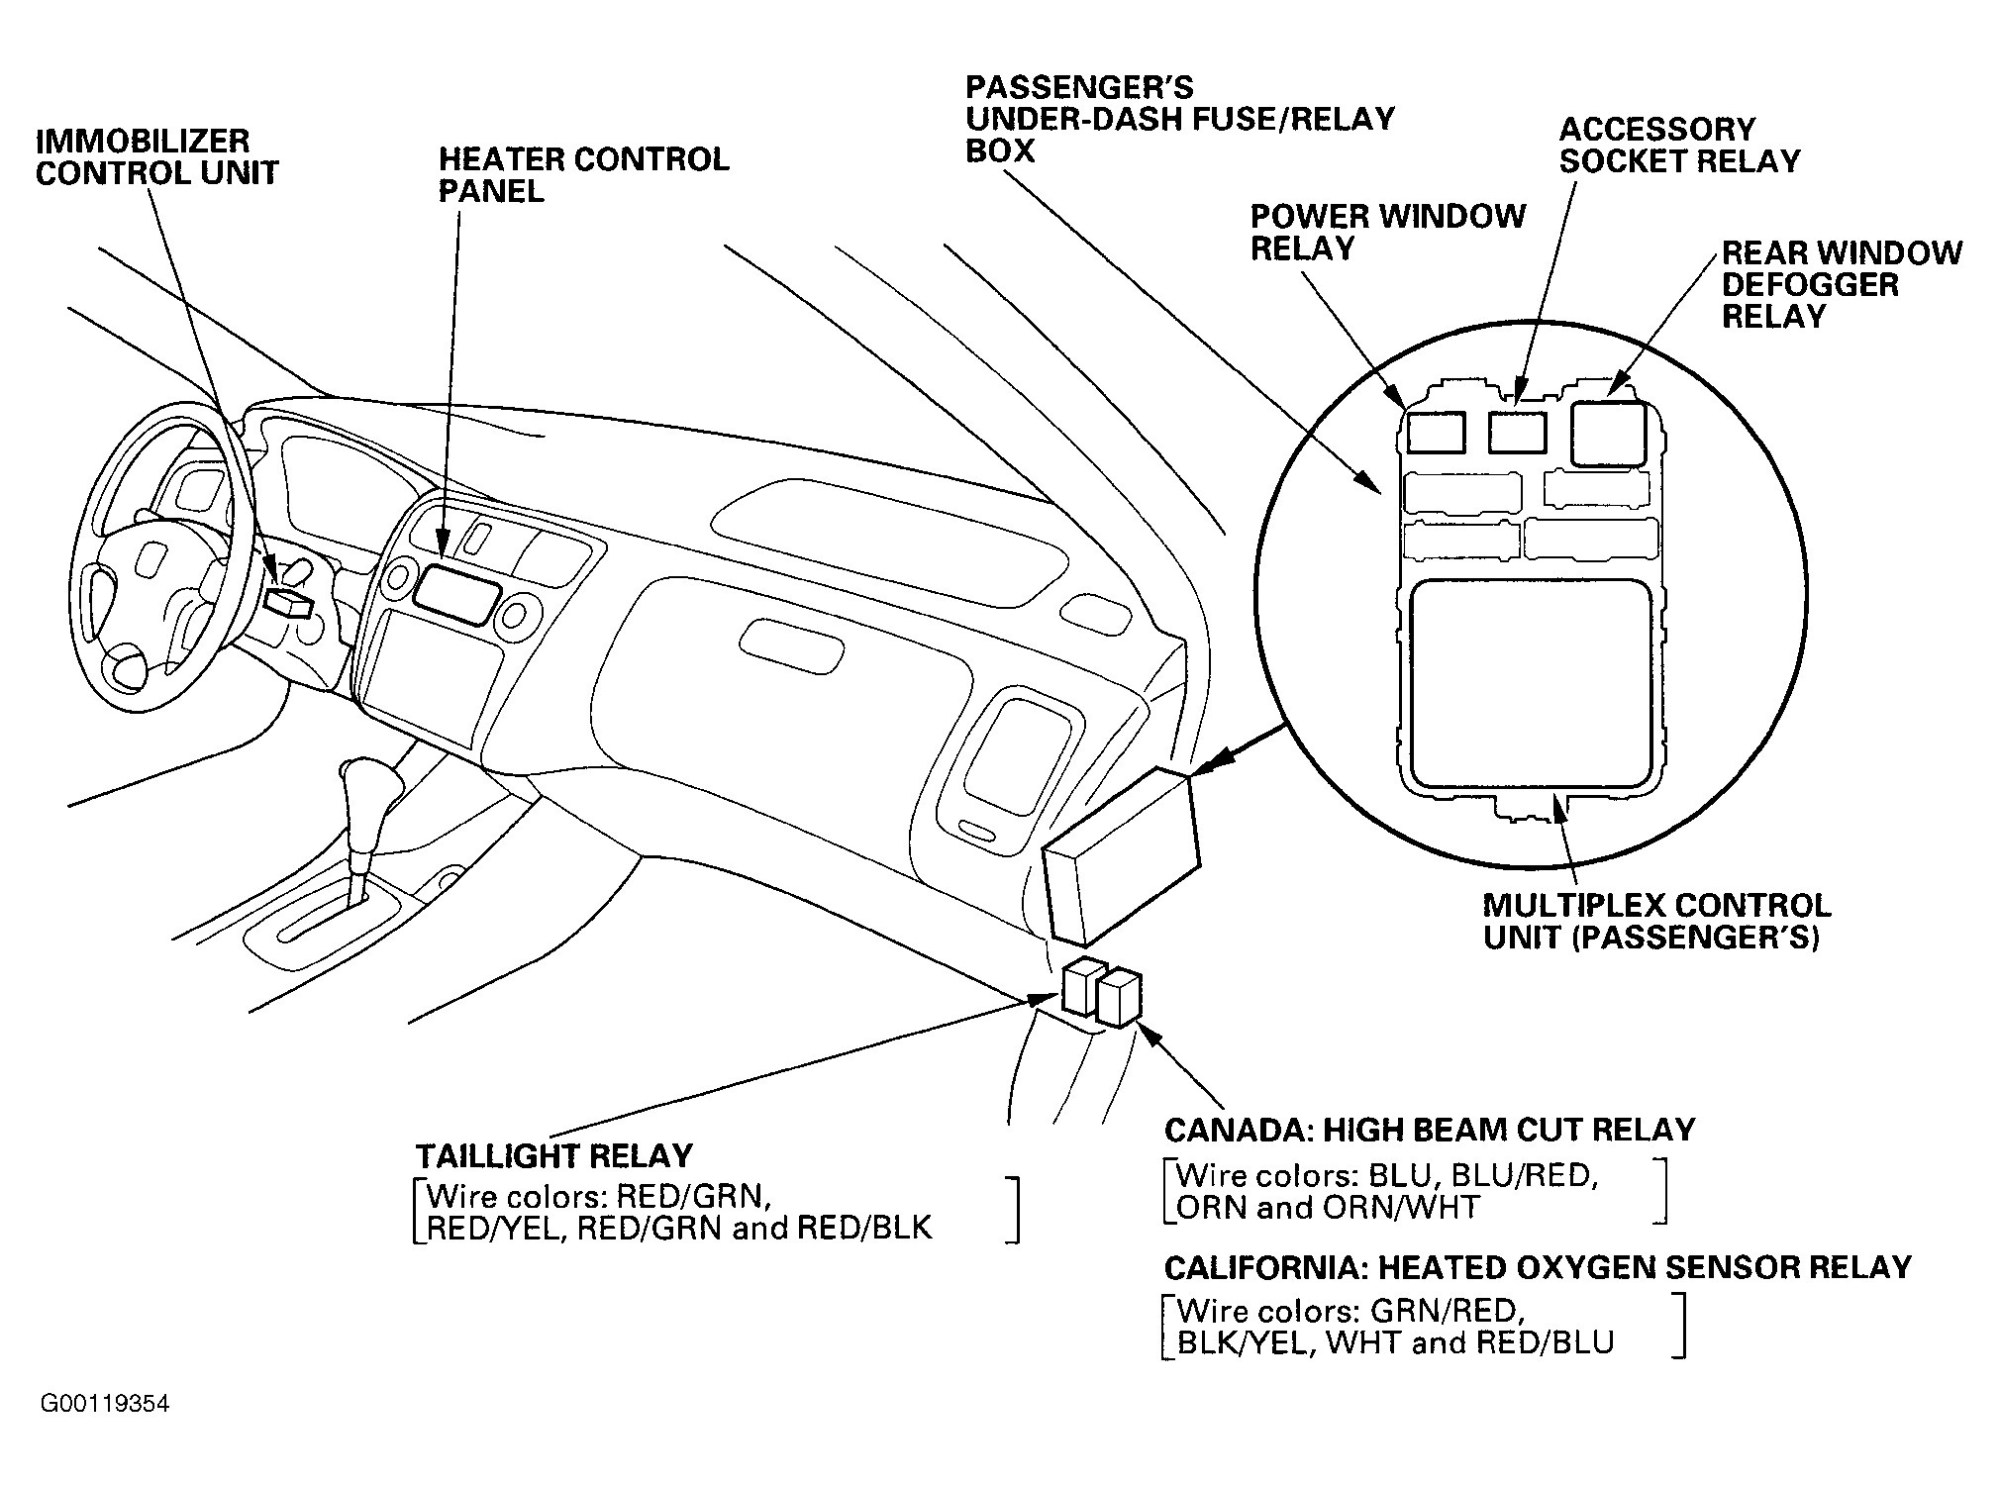 hight resolution of 1999 civic engine diagram wiring diagram detailed 91 crx si engine 98 accord engine diagram wiring